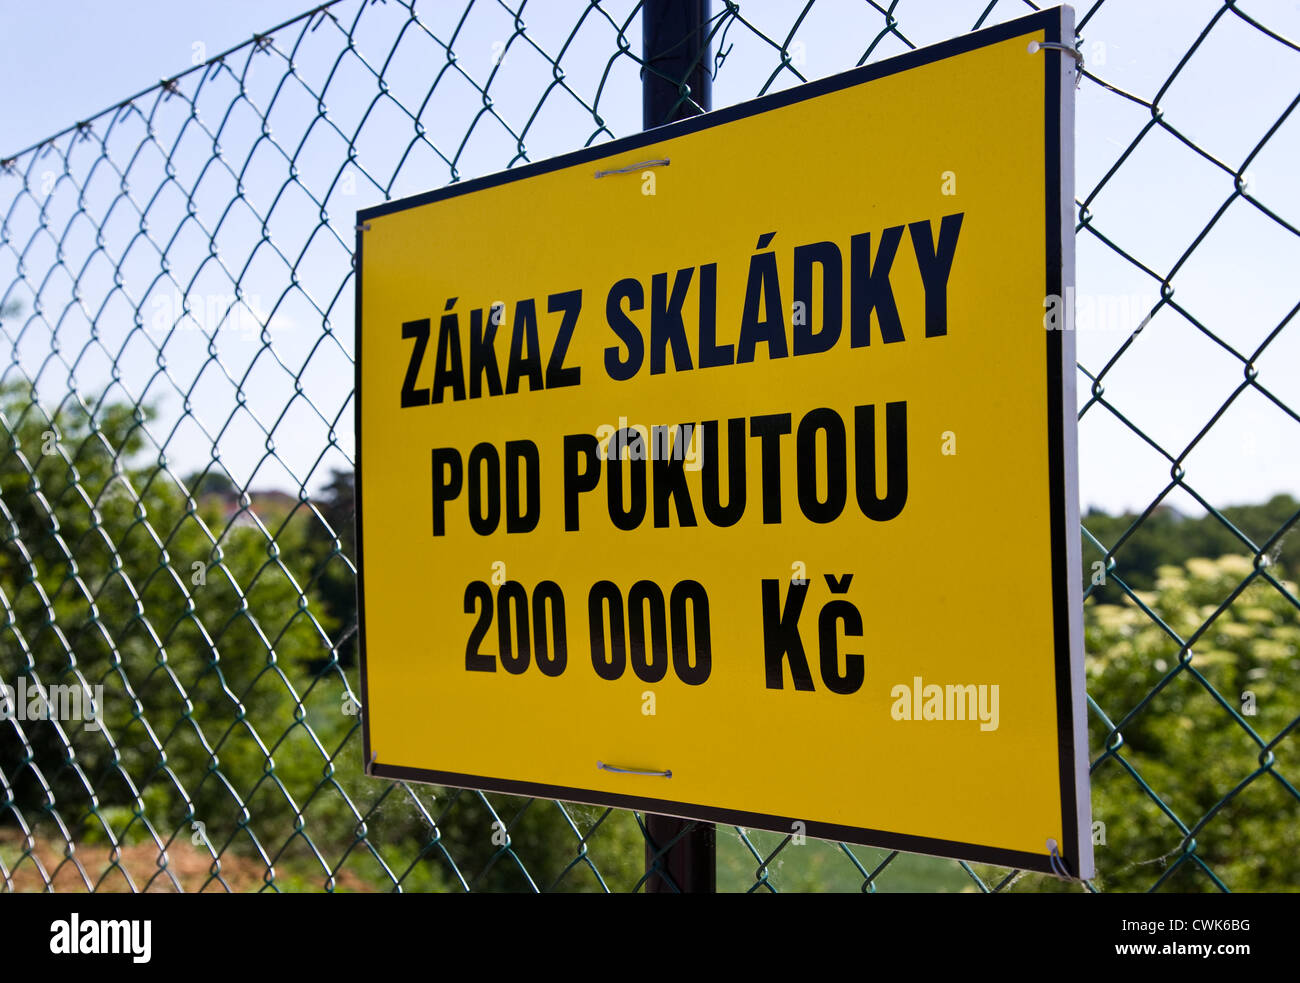 tabule Zakaz skladky / sign Dumping not allowed - Stock Image